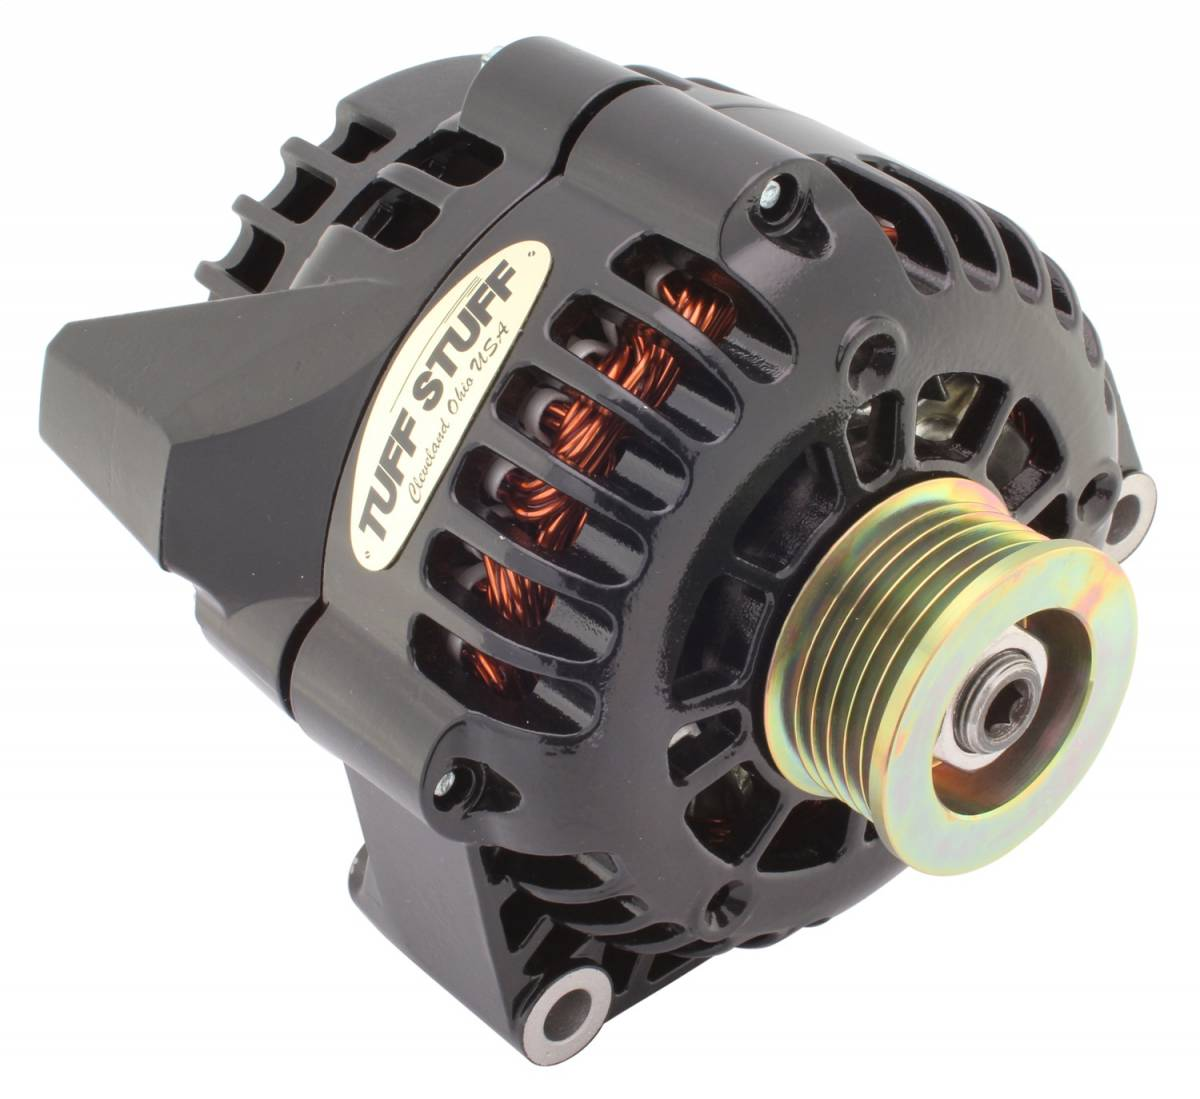 Tuff Stuff Performance - Alternator 175 AMP Upgrade 1-Wire Or OEM Wire Hookup 6 Groove Pulley Stealth Black 8206NB